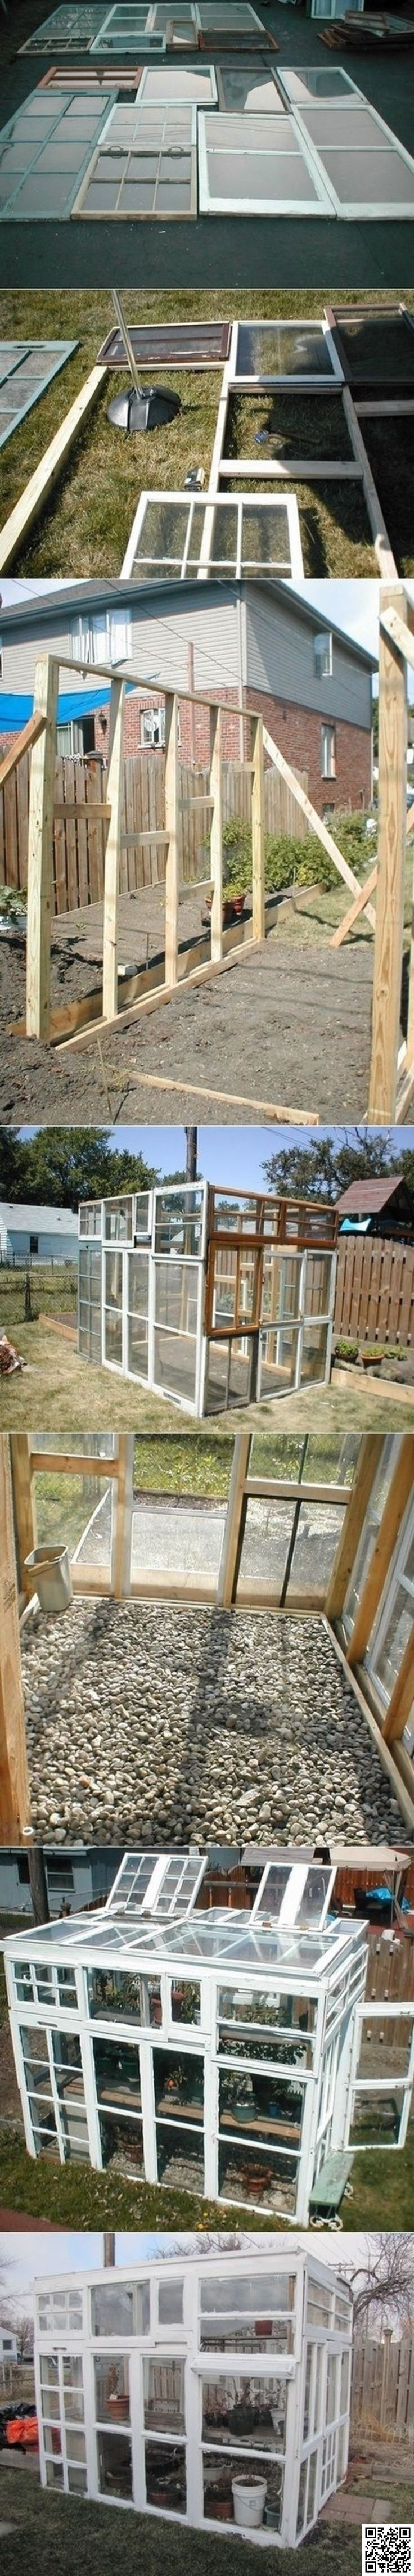 12. #Build a Greenhouse with Old #Windows - 31 Ways to Use Old Windows and Frames ... → DIY #Reuse